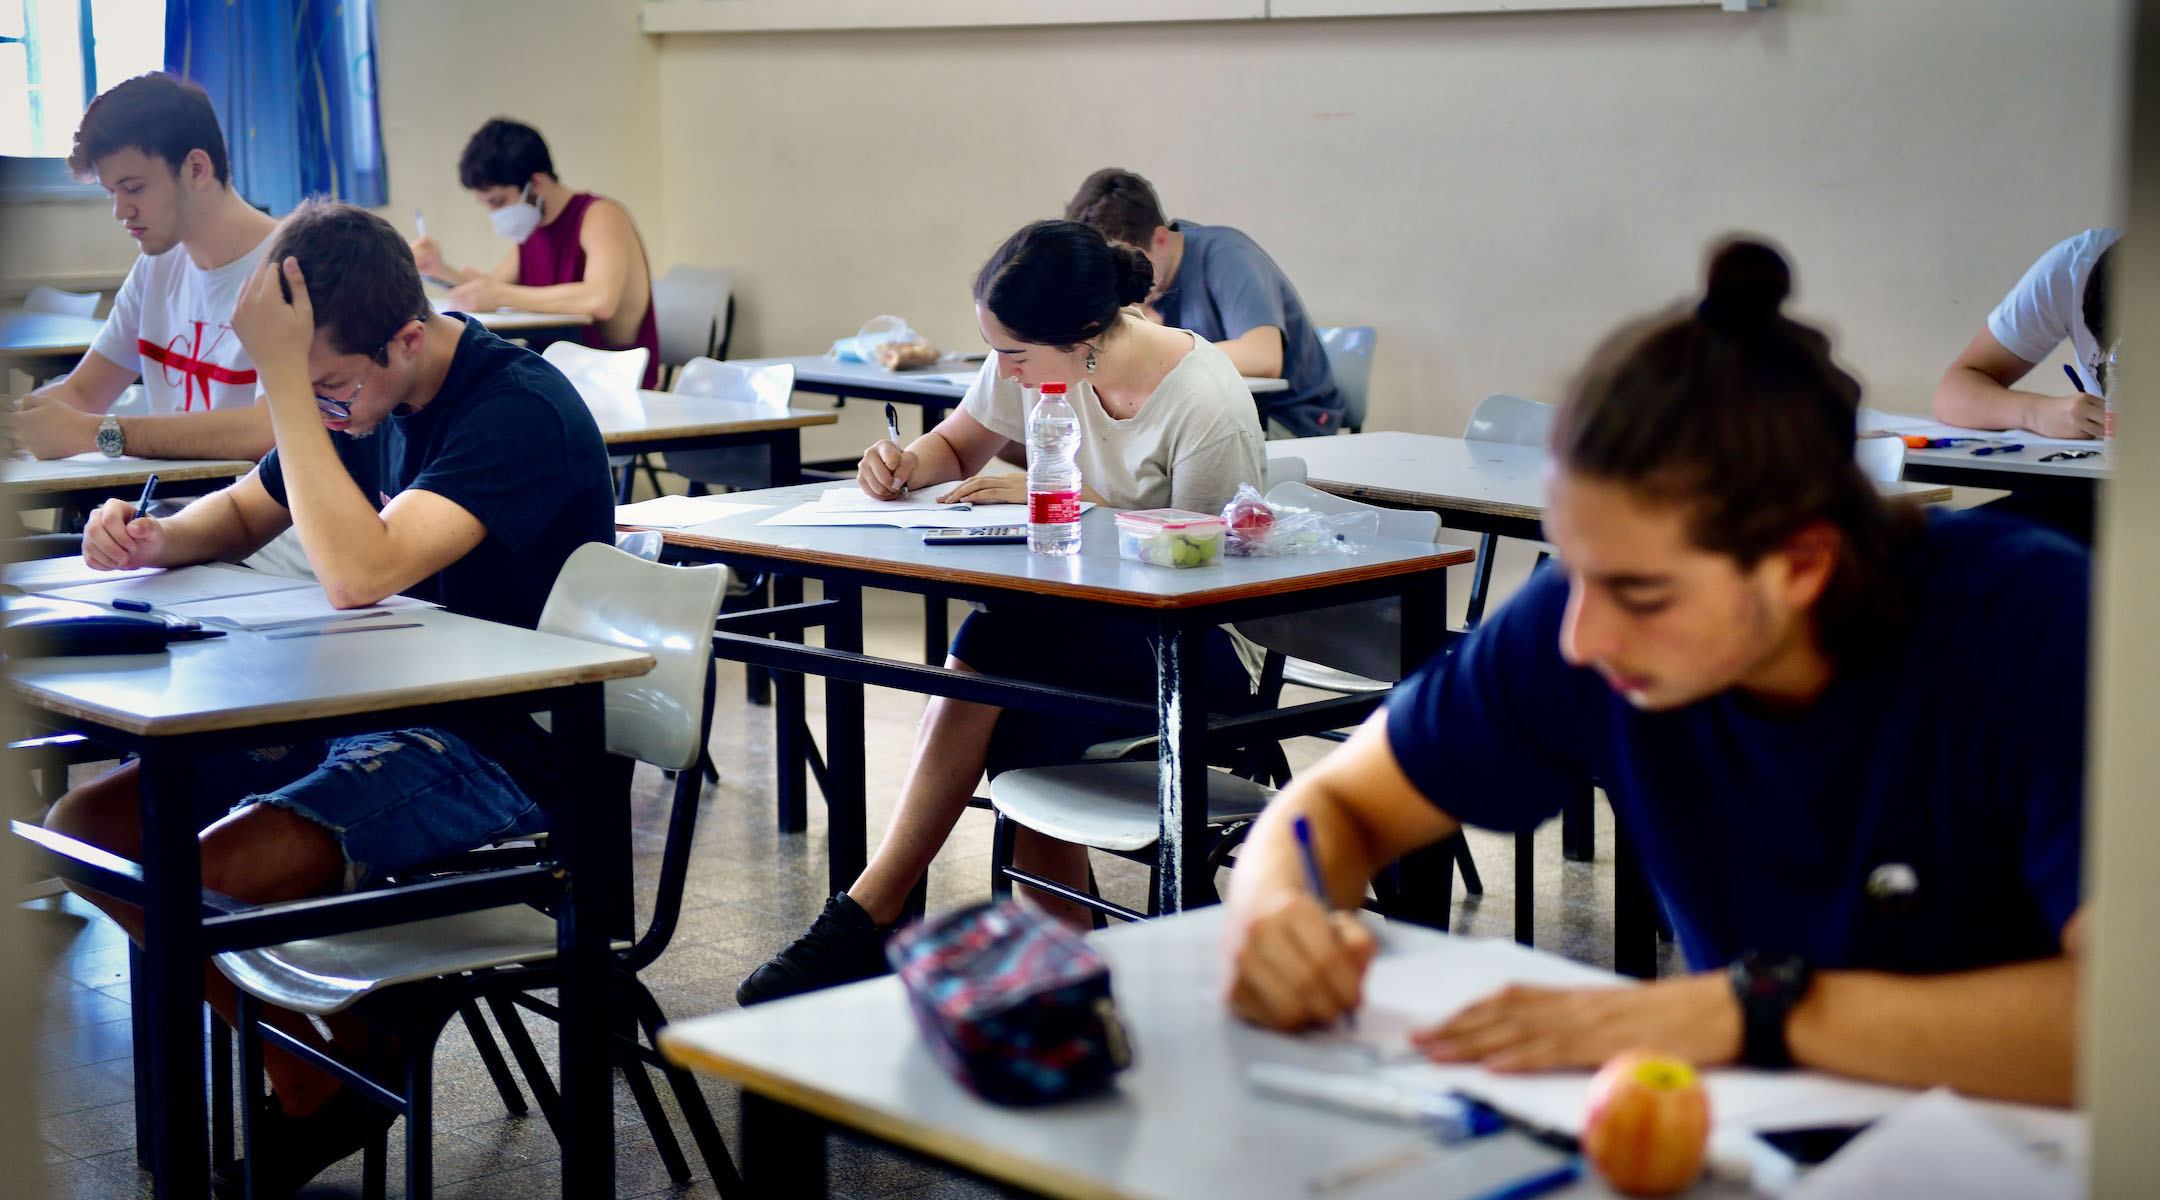 To shrink classes amid COVID-19, Israel needs to hire 15,000 teachers. It won't be easy.